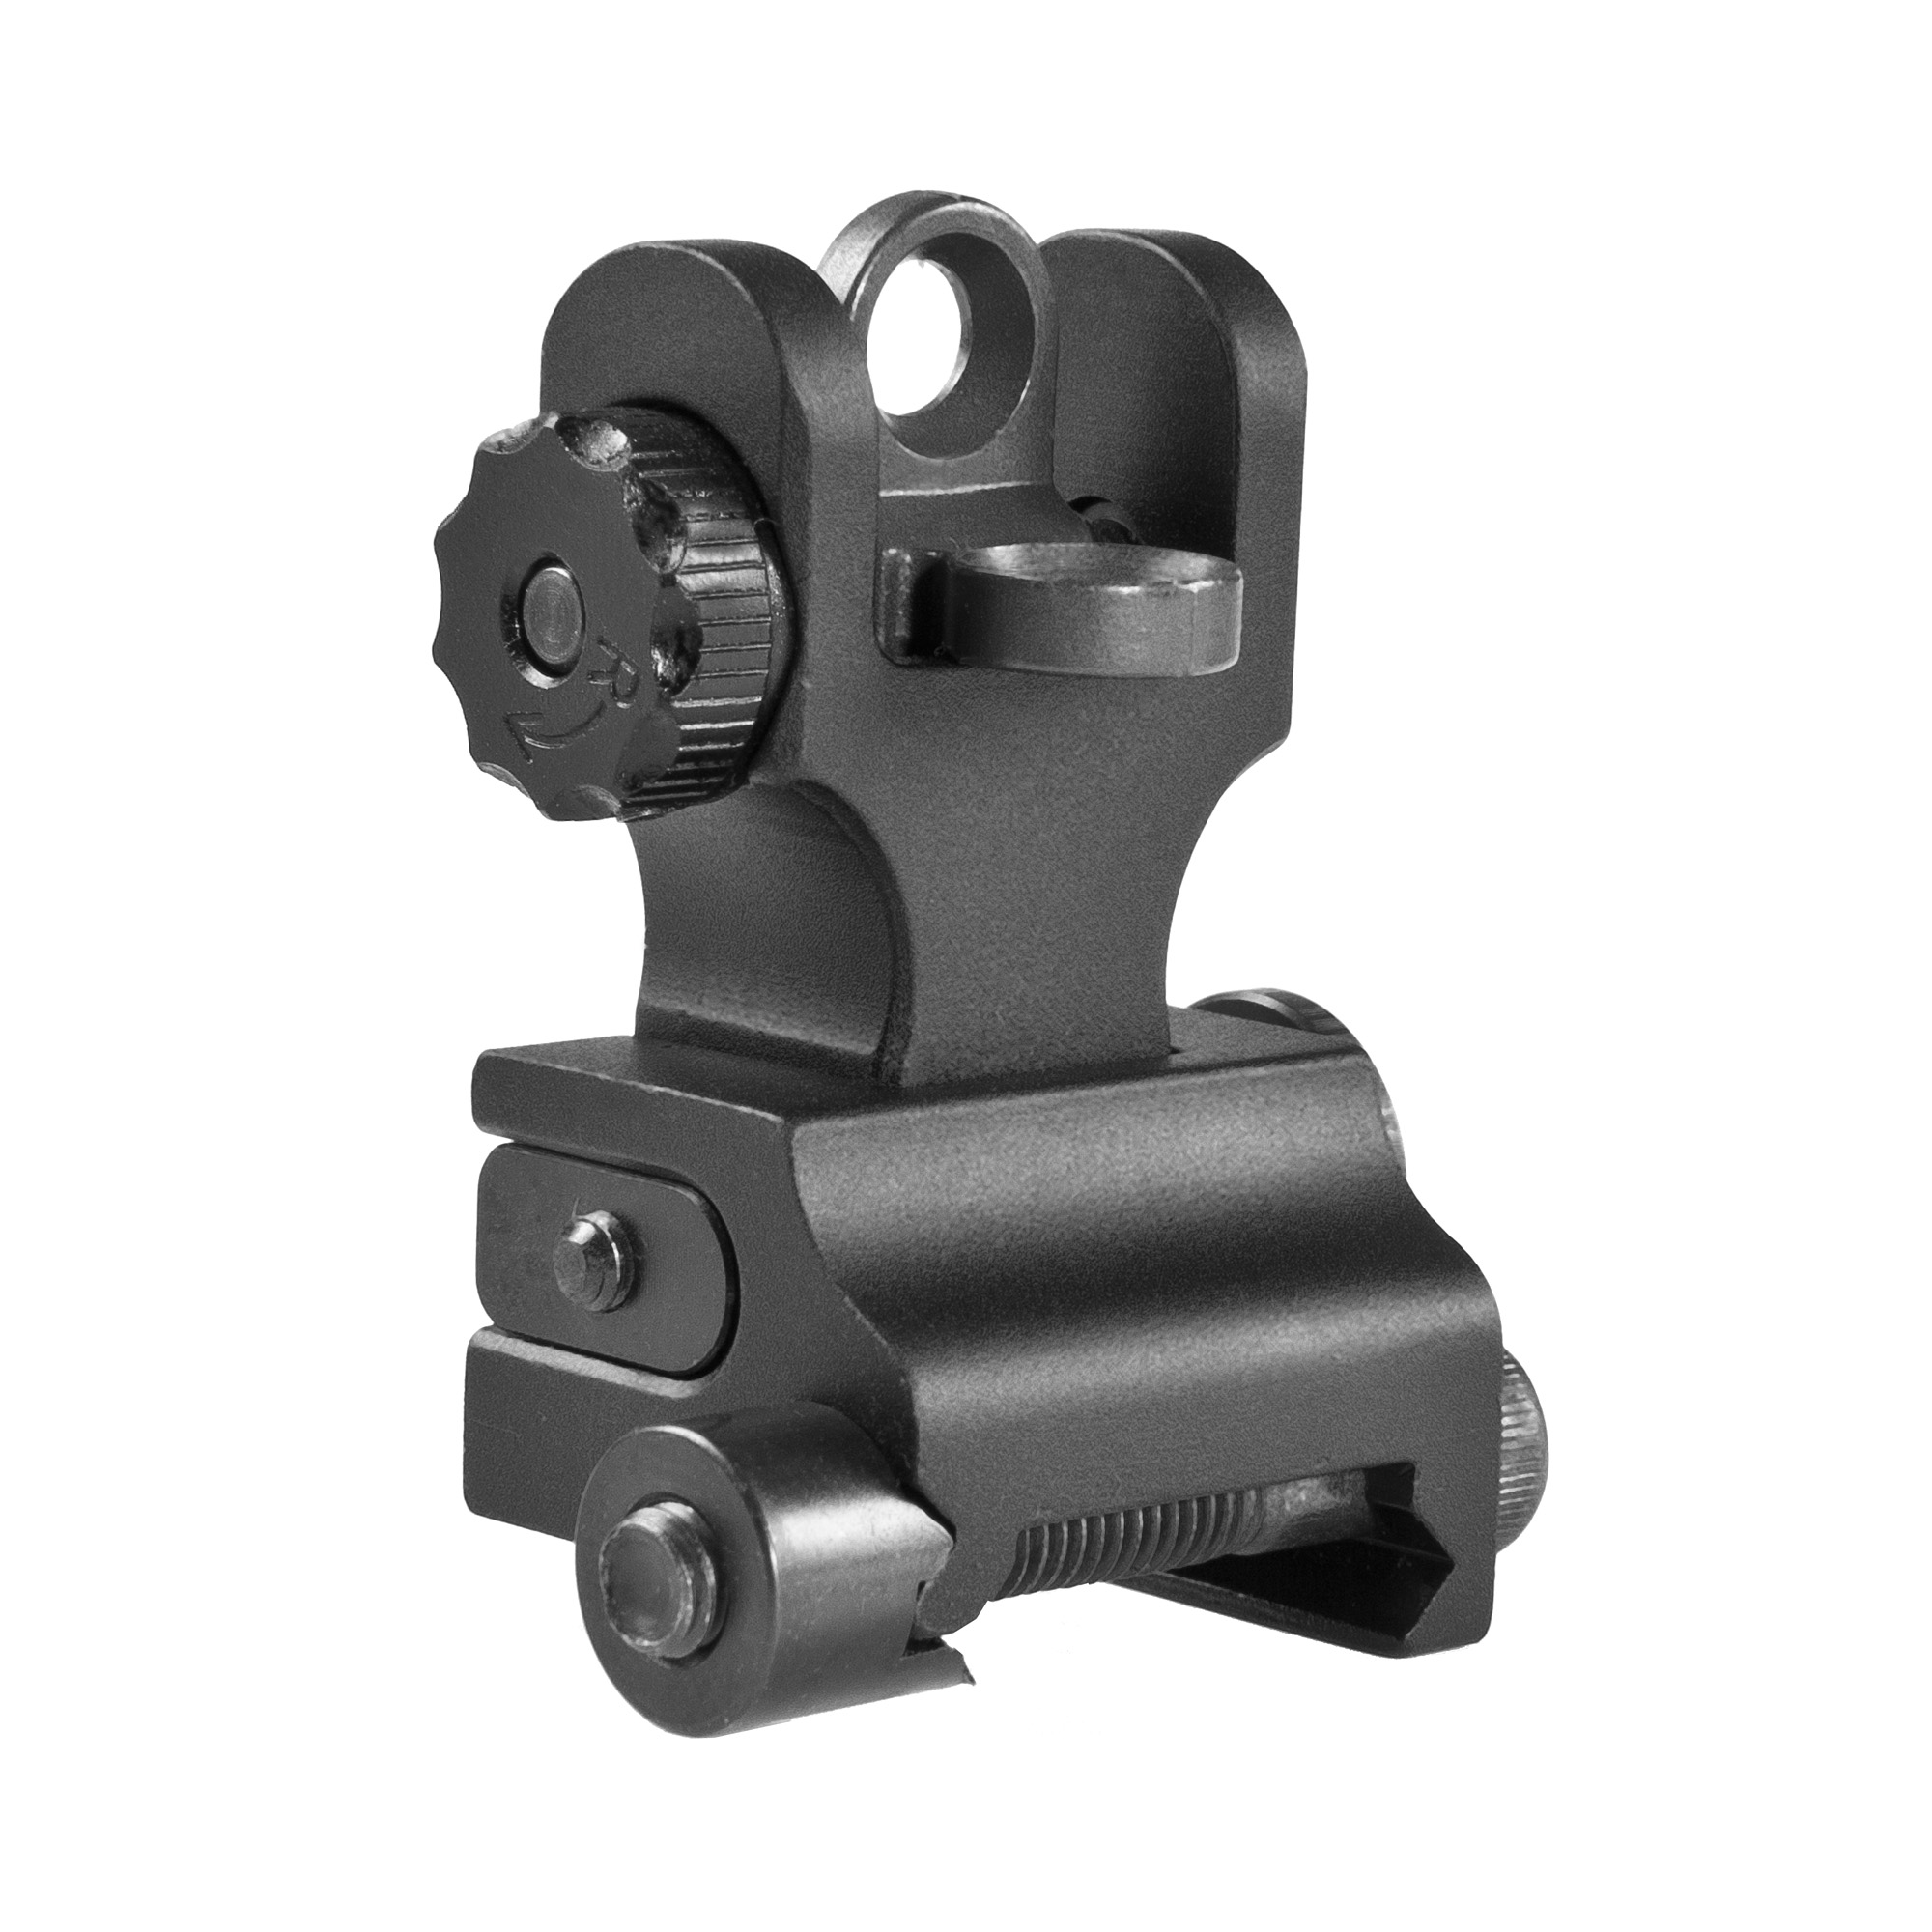 Samson Quick Flip sights are the most robust combat sights on the market. Accepts all aftermarket rear aperture replacements with Mil-spec dimensions. All sights lock in the deployed position. It is not intended for lower height gas block rails. The durable construction and solid mounting system guarantees you to stay on zero.